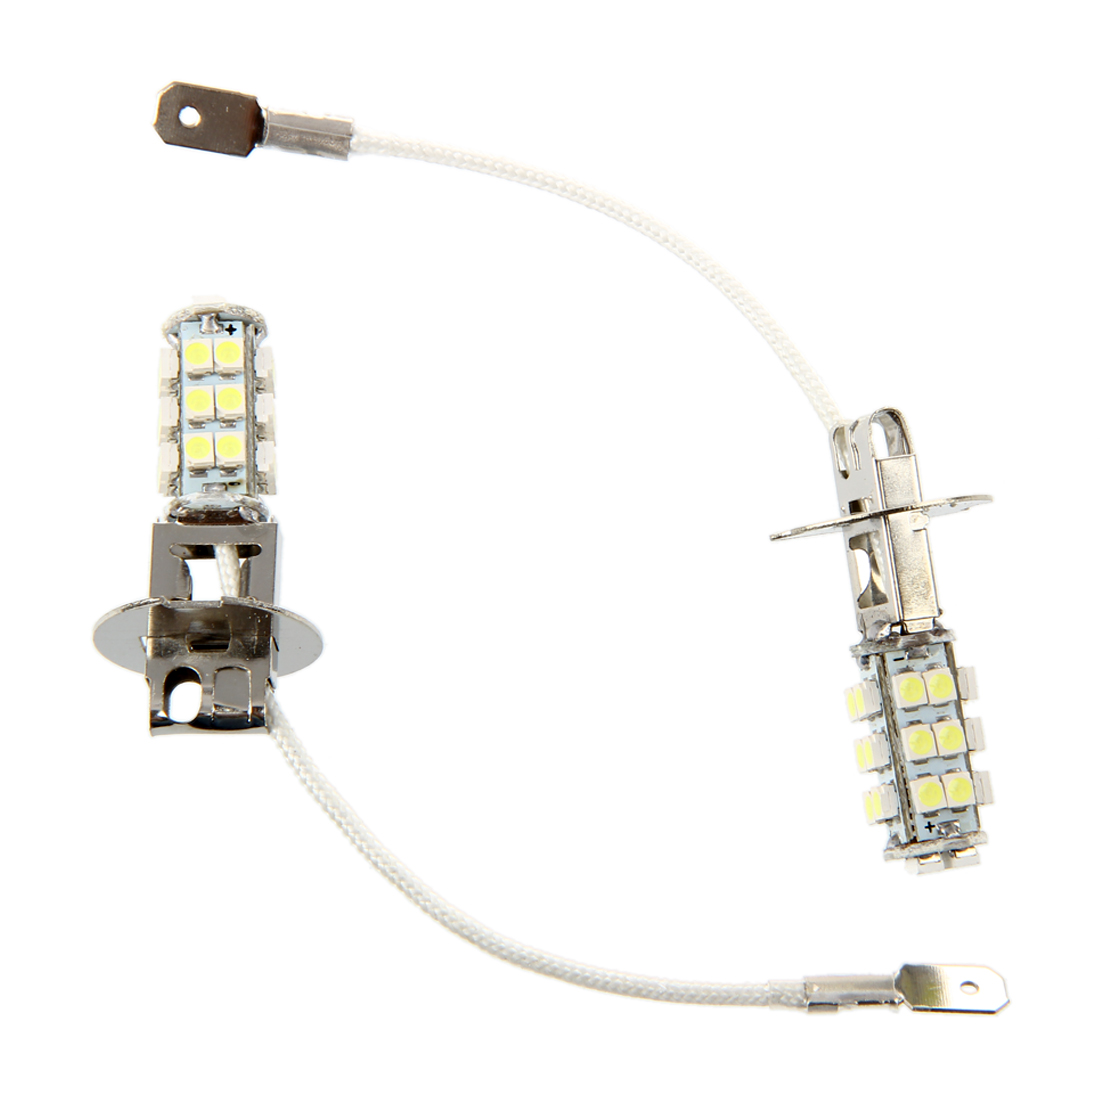 2 Car H3 3528 SMD 26 LED Head Light Headlight Bulb Lamp